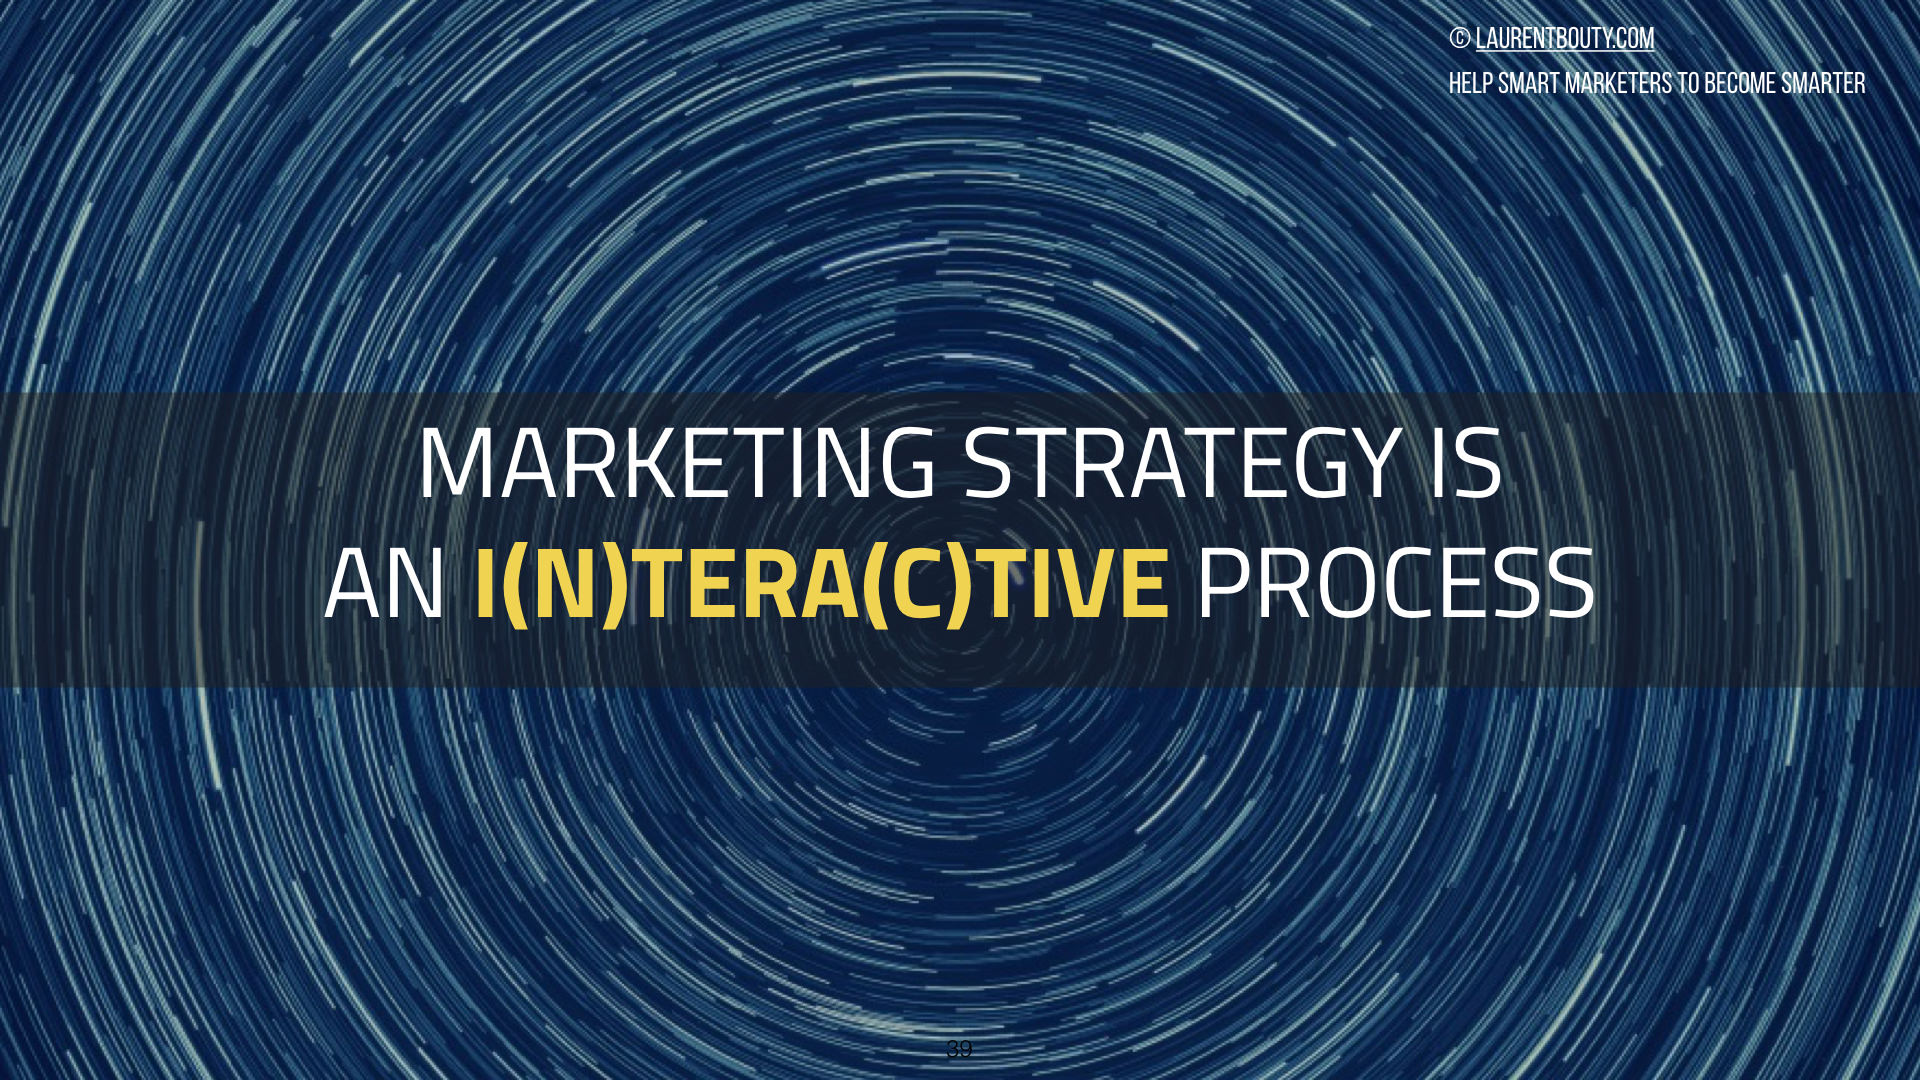 Marketing Strategy is Interactive and Iterative Process